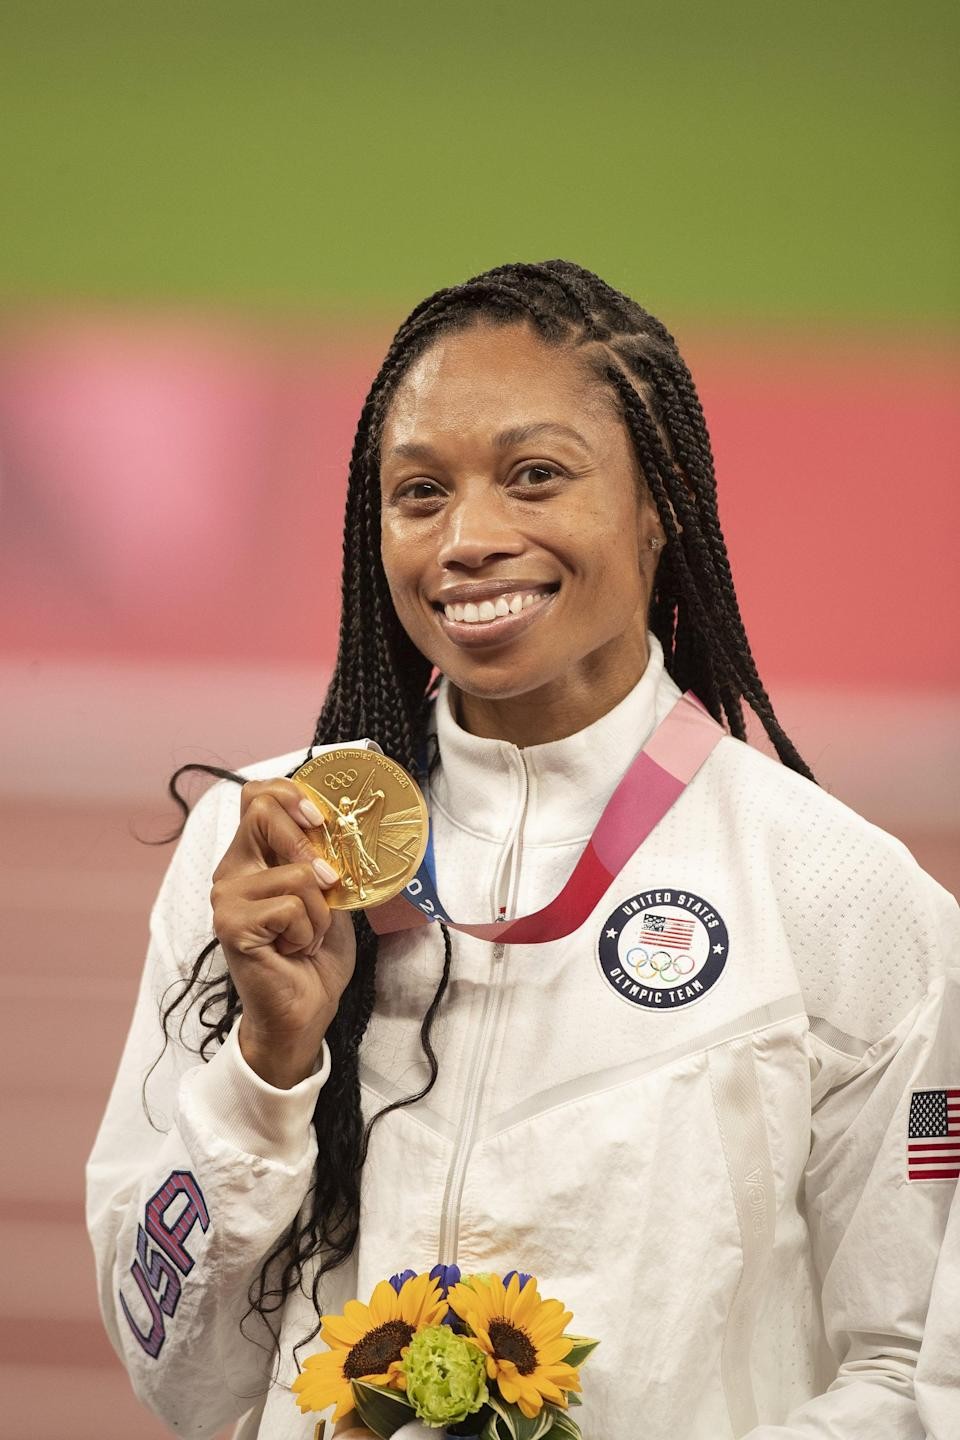 """<p>Five-time Olympian Allyson Felix scored two Olympic medals in Tokyo, becoming <a href=""""http://www.popsugar.com/fitness/how-many-olympic-medals-has-allyson-felix-won-48419847"""" class=""""link rapid-noclick-resp"""" rel=""""nofollow noopener"""" target=""""_blank"""" data-ylk=""""slk:the most decorated Olympian in women's track and field history"""">the most decorated Olympian in women's track and field history</a>. Off the track, she's a true champion, constantly using her platform to bring awareness to the inequities women - and especially mothers - face. If you're feeling inspired (obviously), here's how to re-create her podium look. </p> <ul> <li><span>Athleta Flurry Force Insulated PrimaLoft Jacket II</span> ($139)</li> <li><span>Gold Medal With Ribbon</span> ($1)</li> <li><span>Meiliy 6-Piece Artificial Sunflower Bouquet</span> ($11)</li> </ul>"""